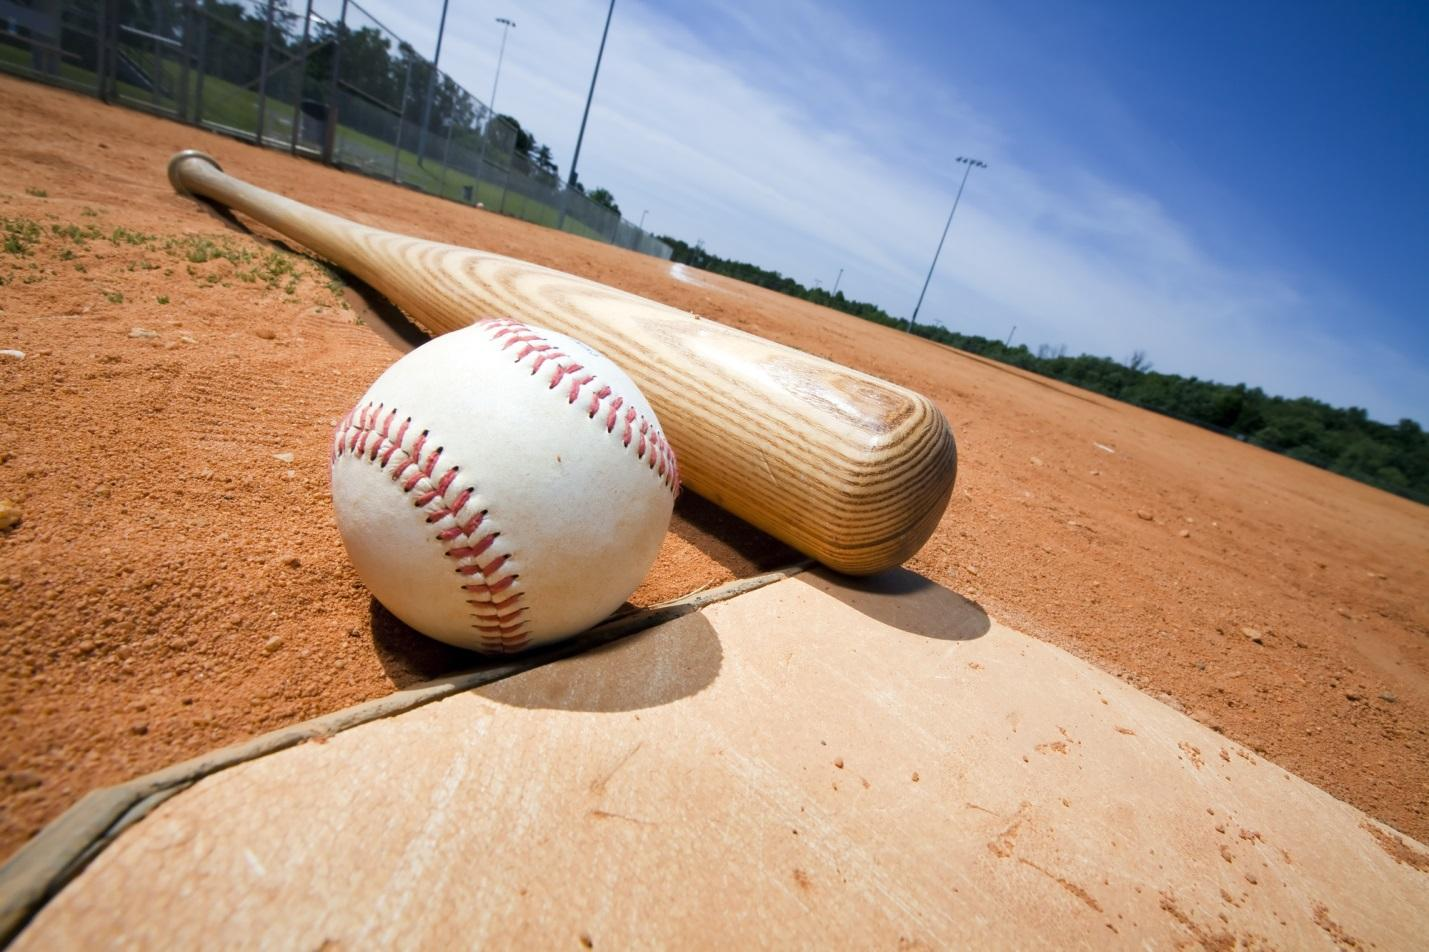 C:\Users\Kathir\Pictures\Your Travel Baseball Packing Companion Checklist For Tournaments.jpg